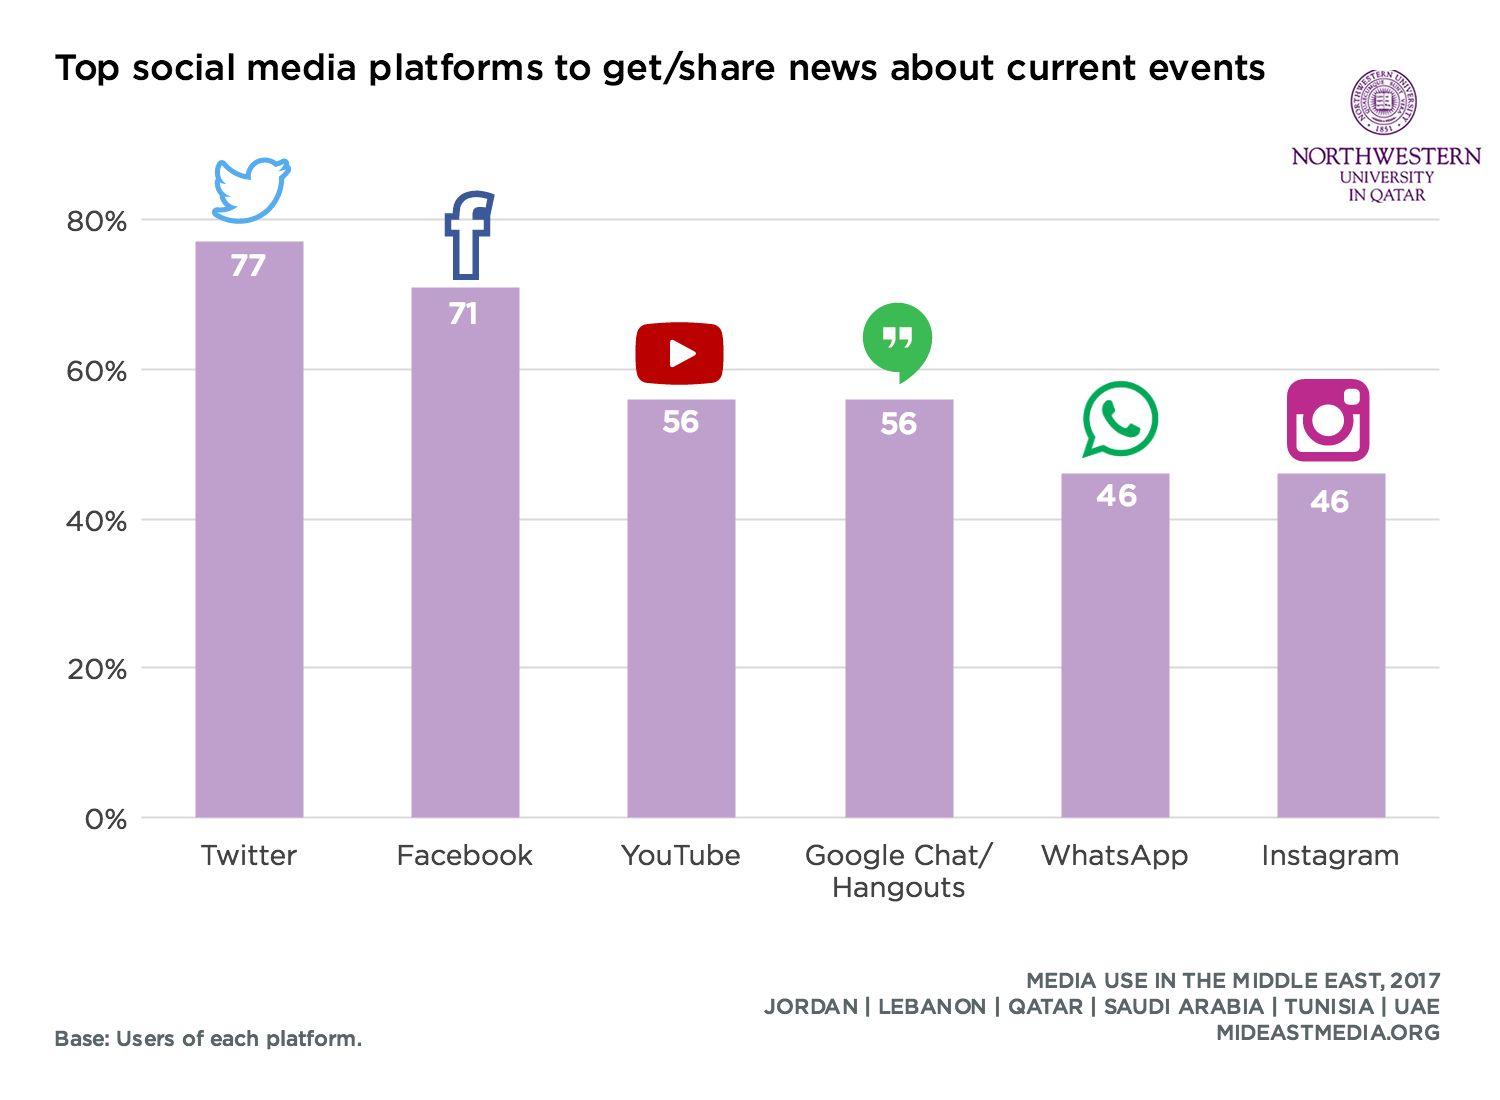 Twitter Is the First Choice for 77% of Internet Users in Middle East to Get & Share News, 2017 | Northwestern University in Qatar